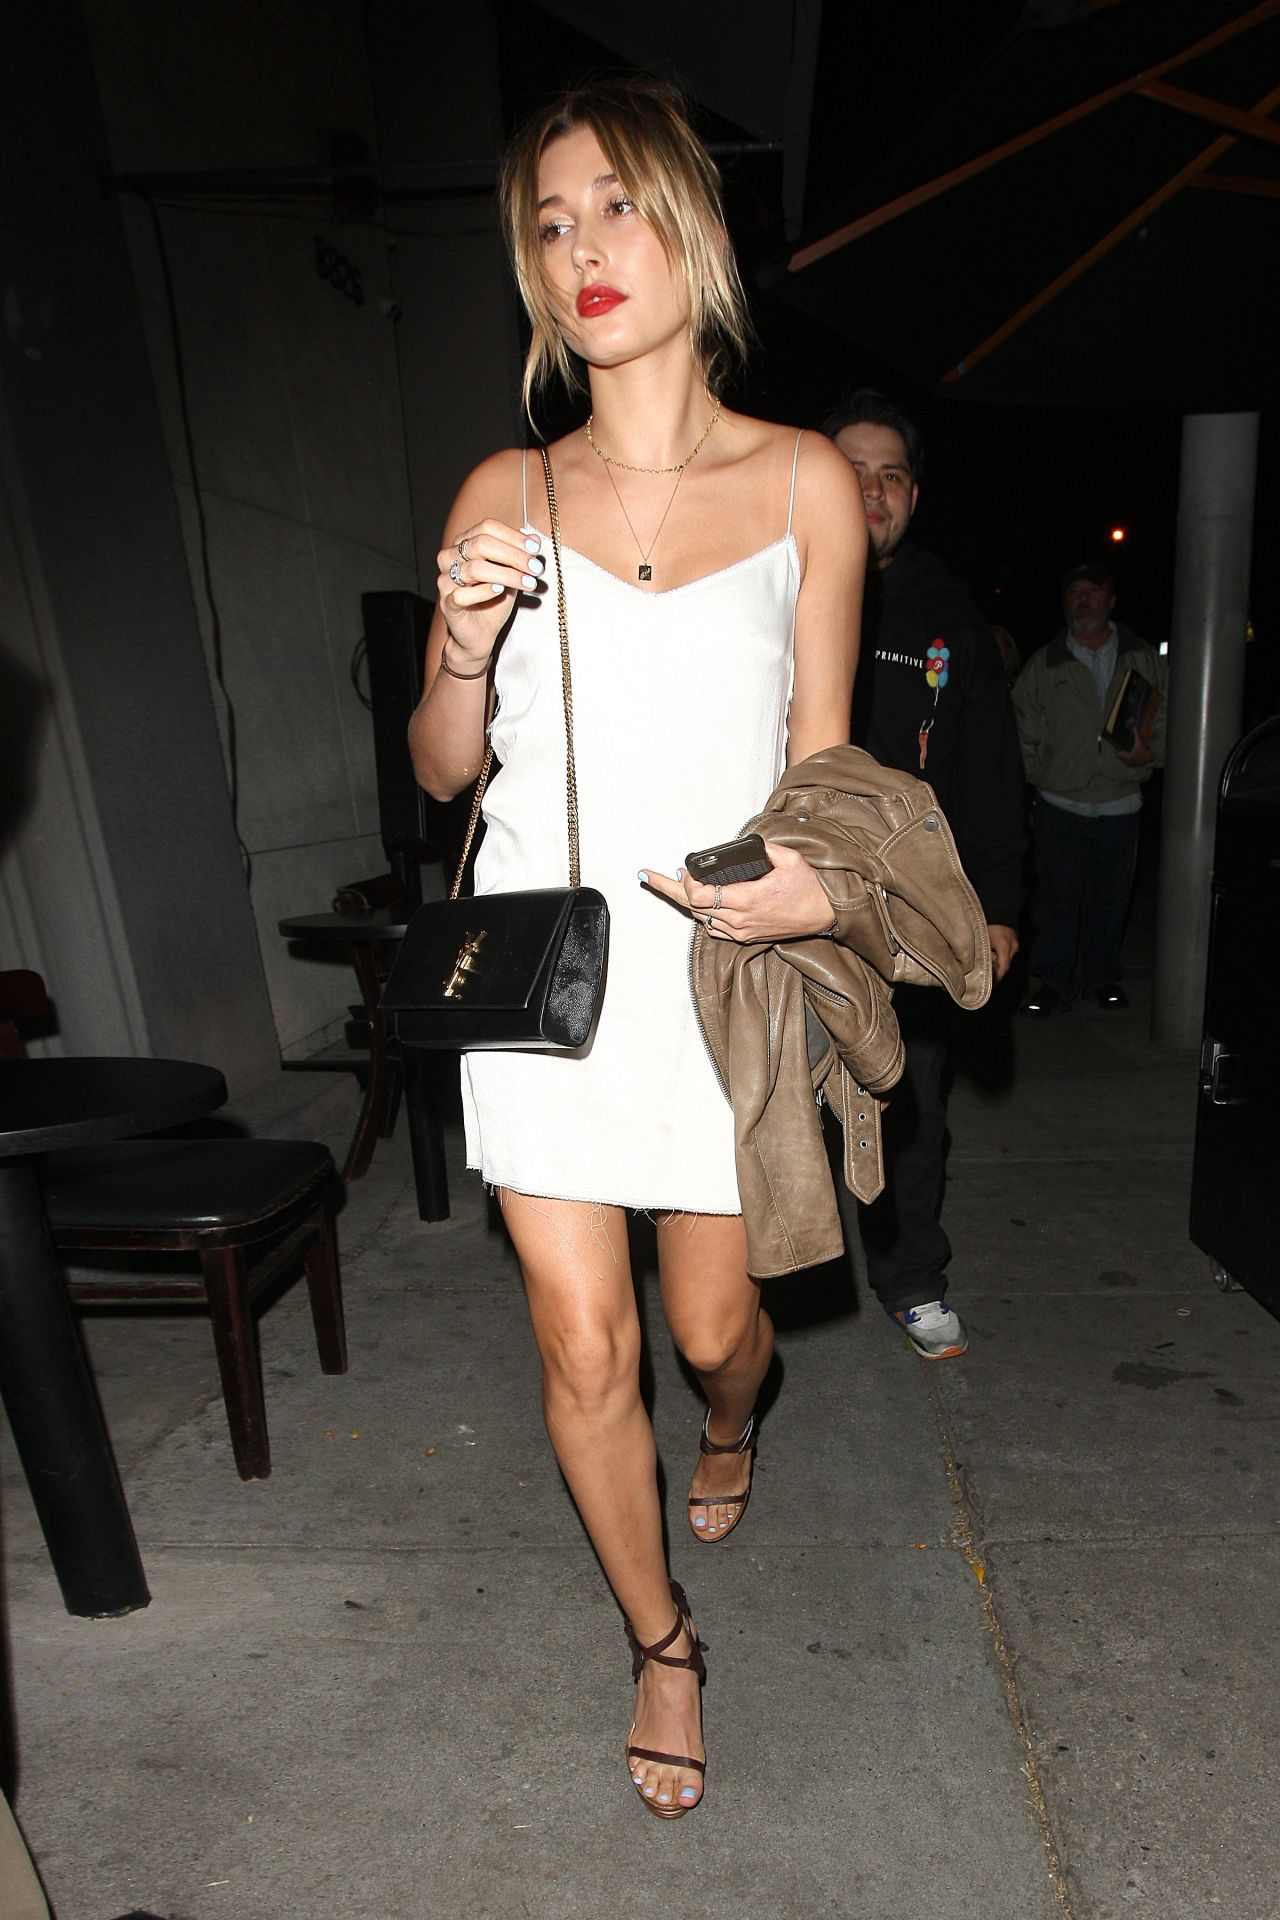 Hollywood White Mini Dress